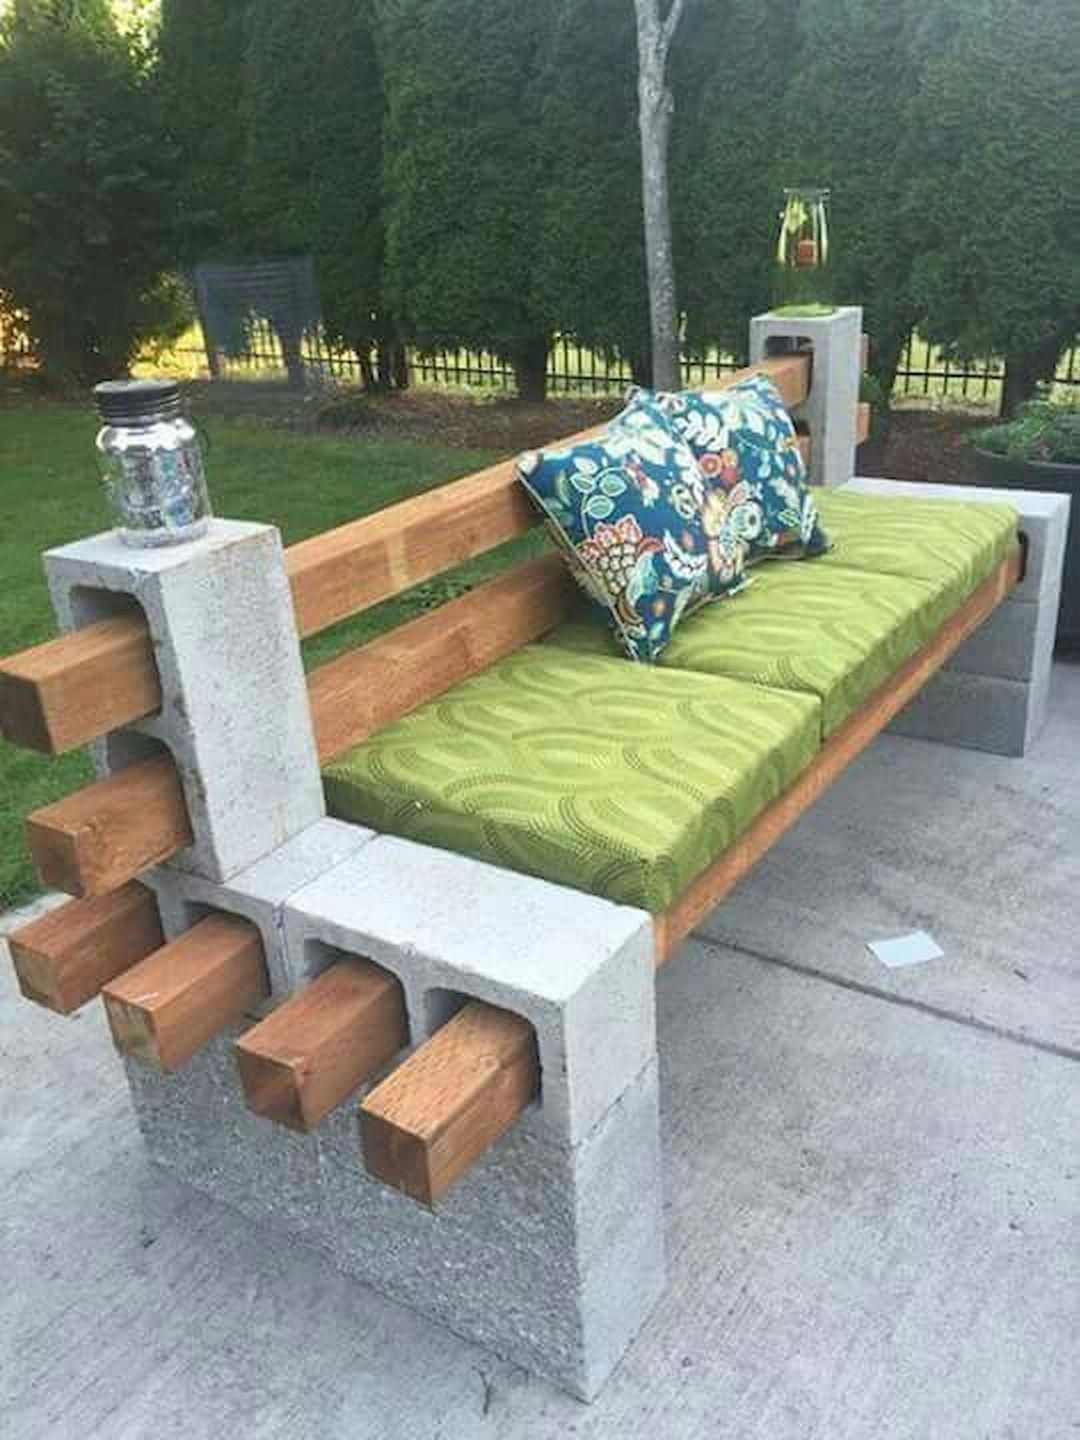 See Our Web Site For Additional Info On Patio Furniture It Is An Outstanding Area To Learn More Patiofurniture Diy Patio Diy Patio Furniture Backyard